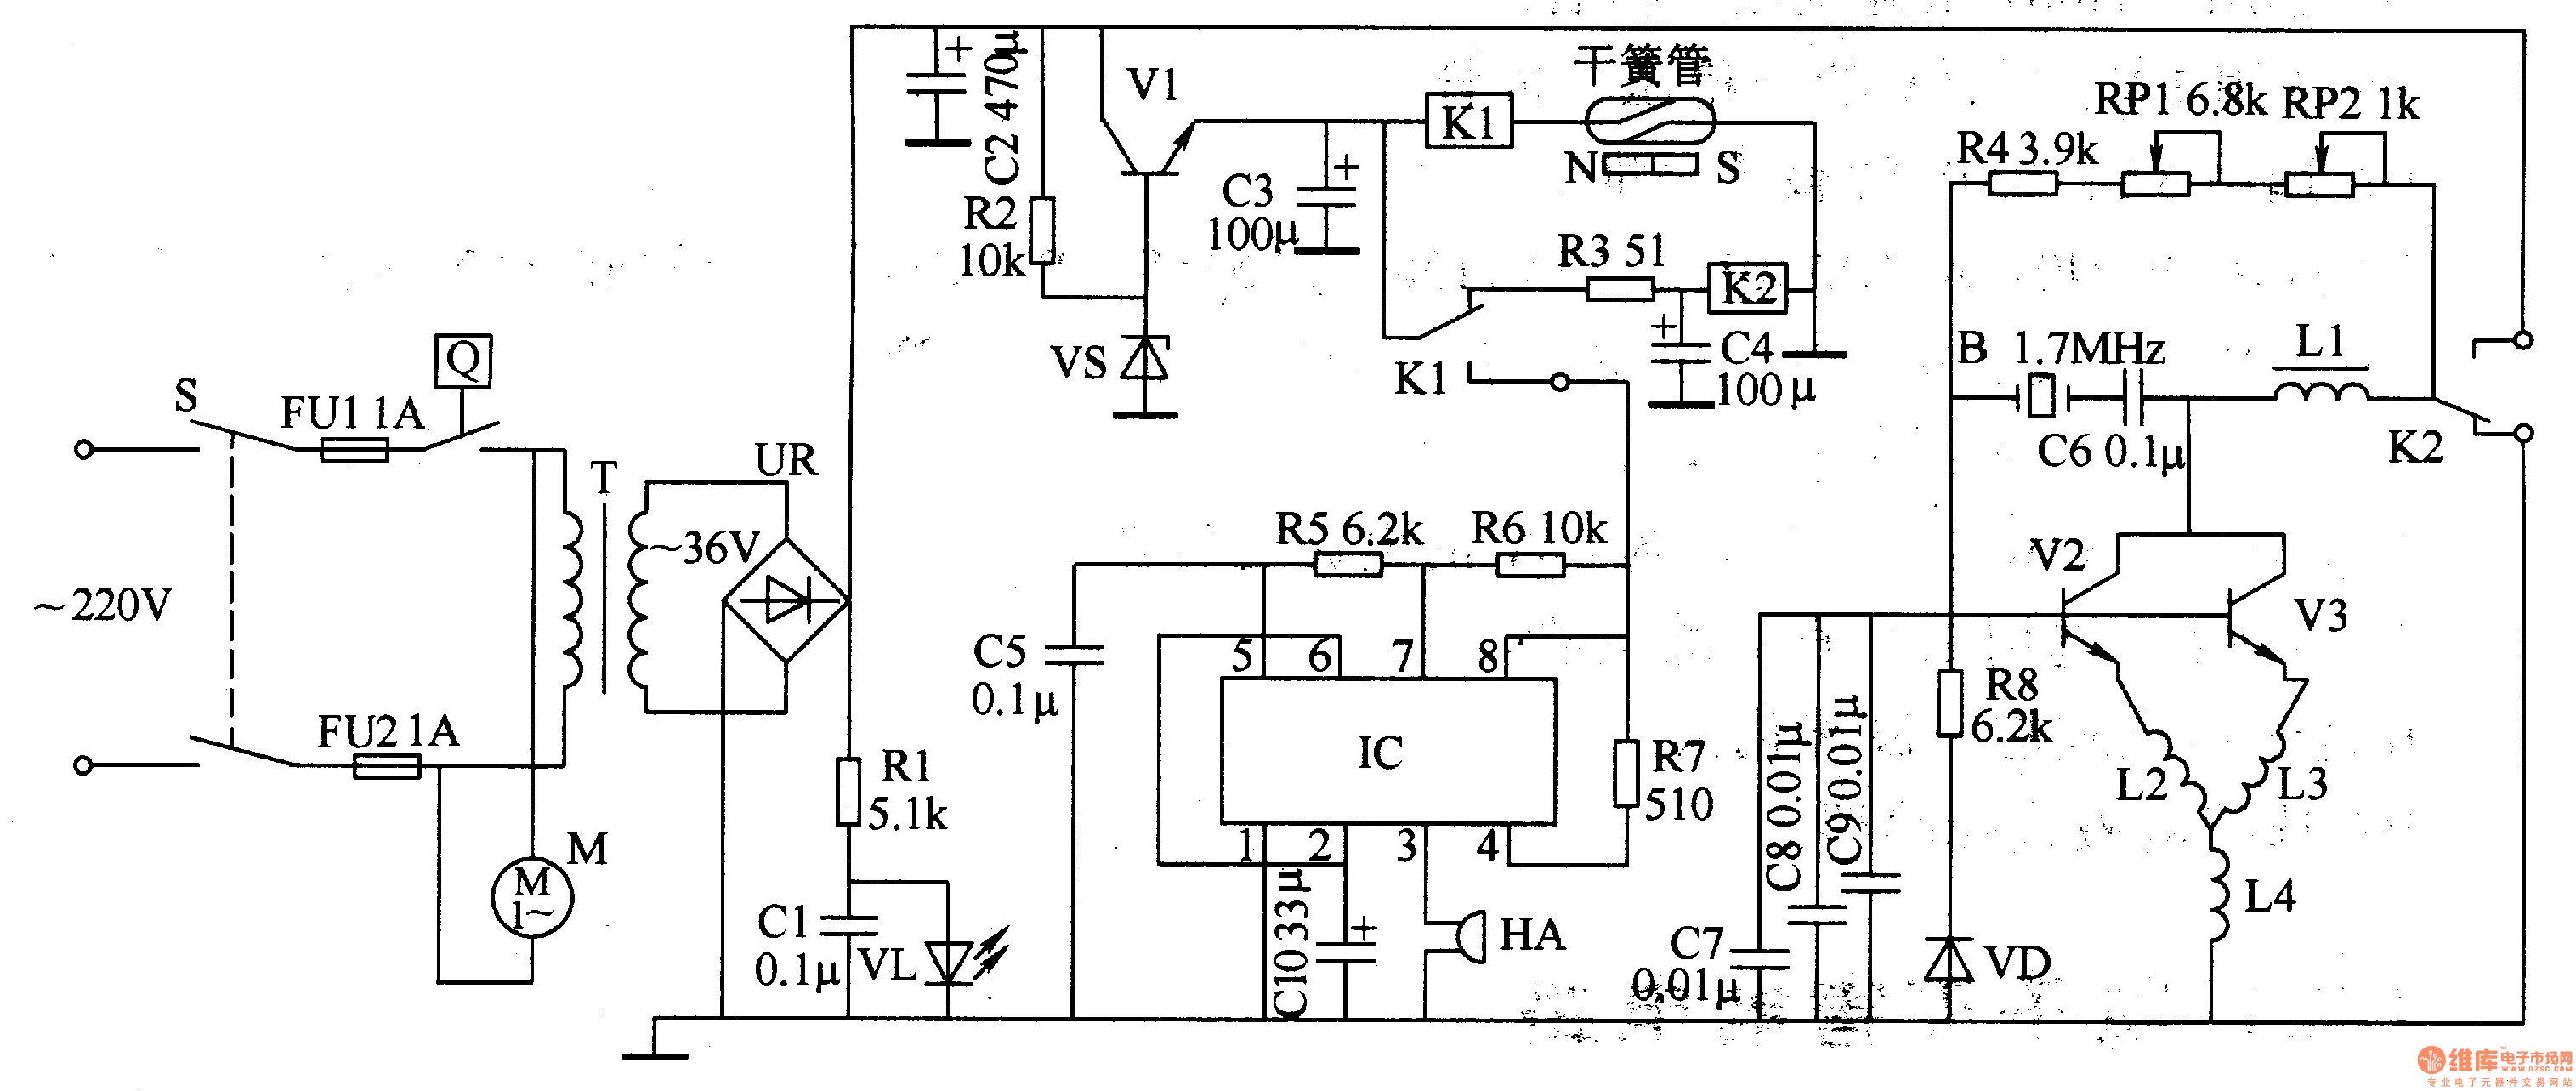 Snap Ultrasonic Circuit Page 3 Audio Circuits Nextgr Photos On